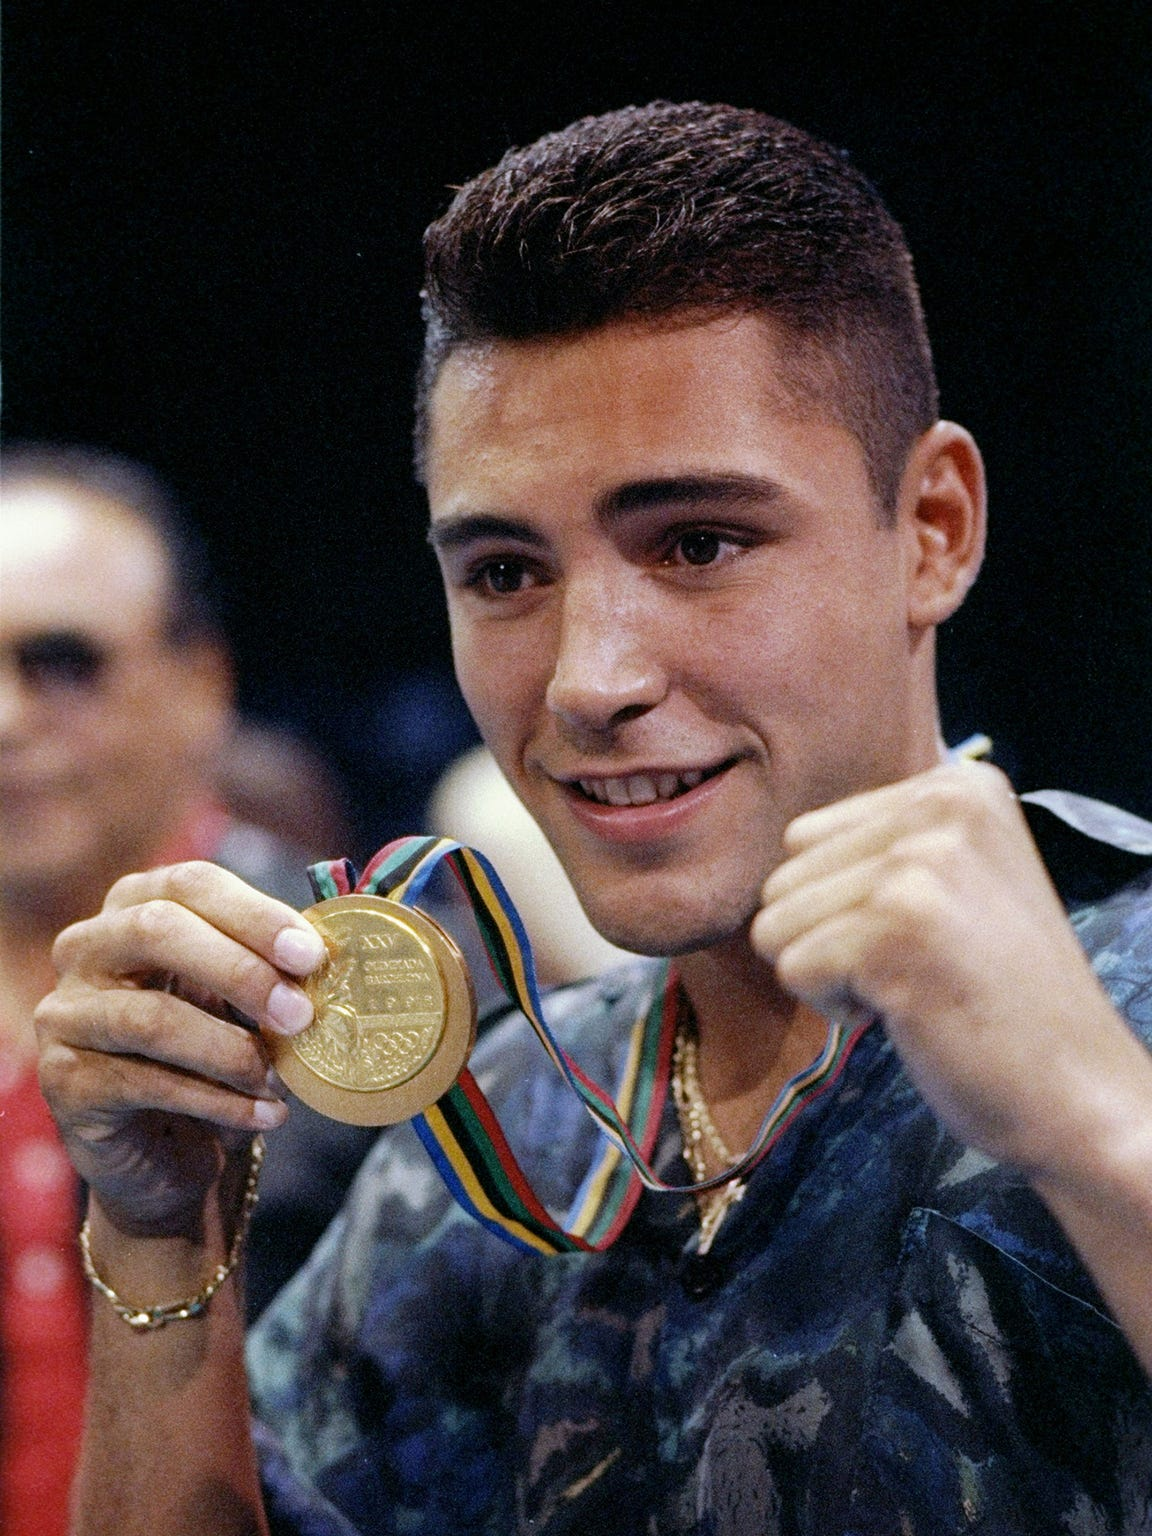 26 Aug 1992: Oscar De La Hoya shows off his gold medal